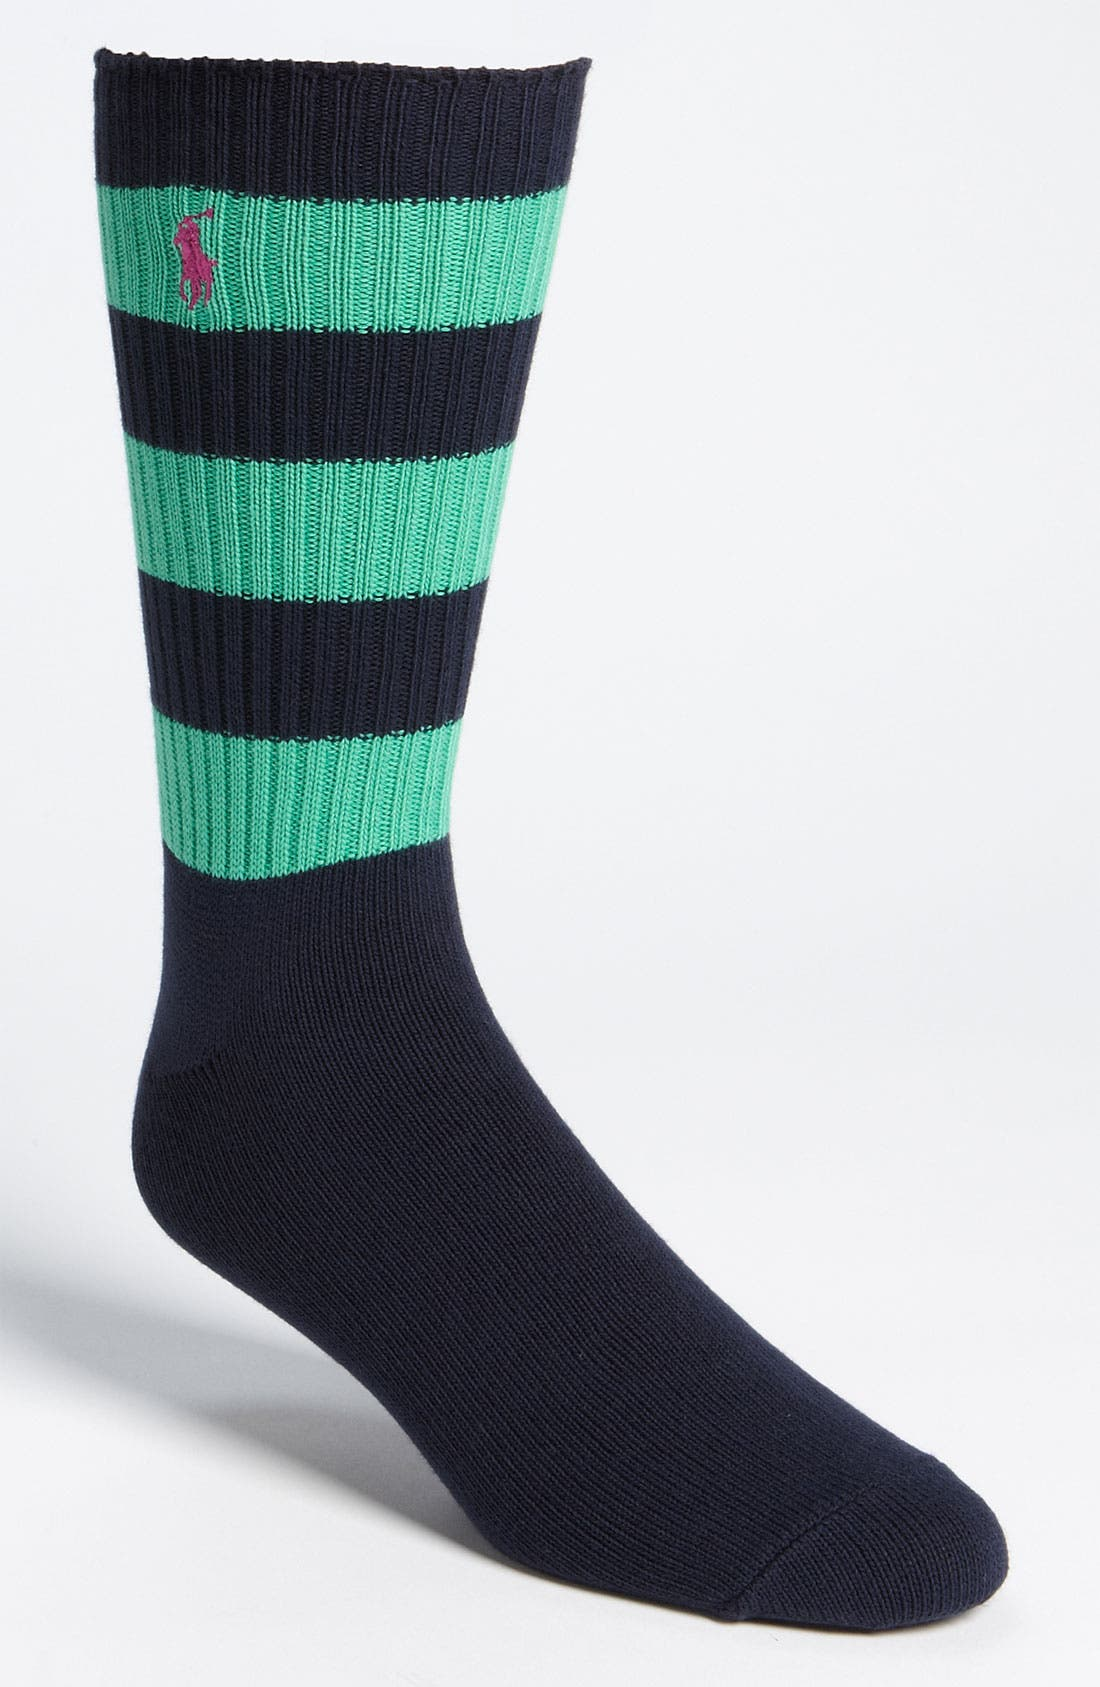 Alternate Image 1 Selected - Polo Ralph Lauren 'Blazer' Crew Socks